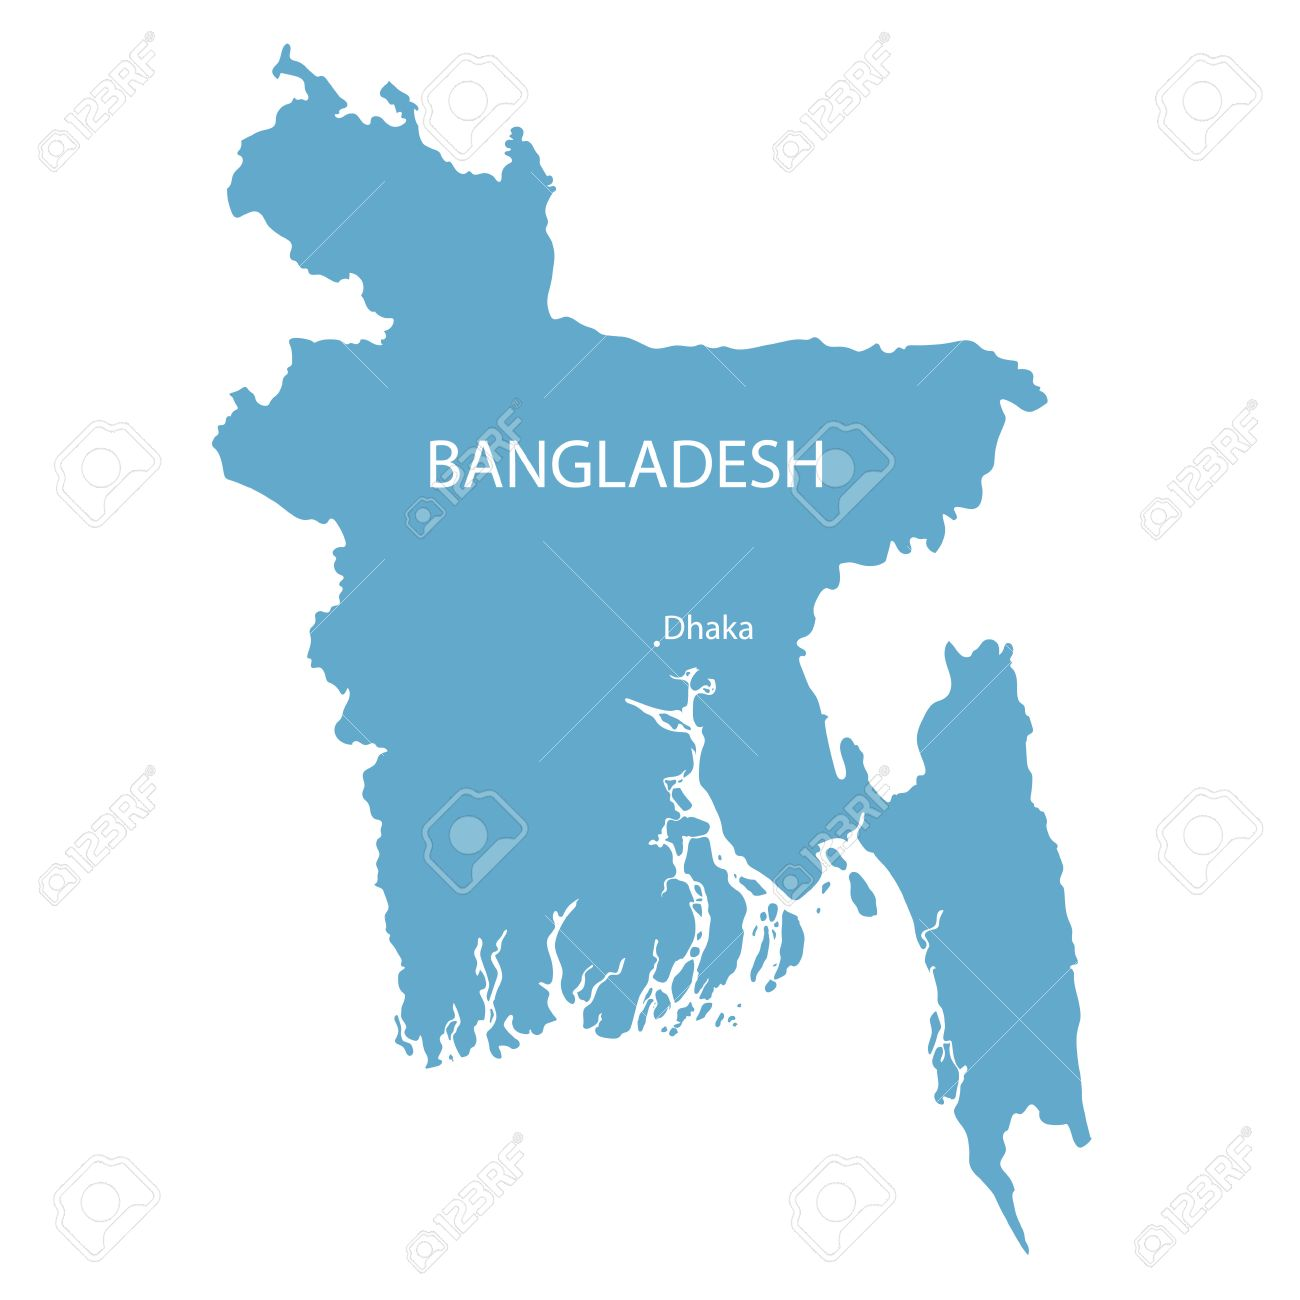 Blue Map Of Bangladesh With Indication Of Dhaka Royalty Free ...